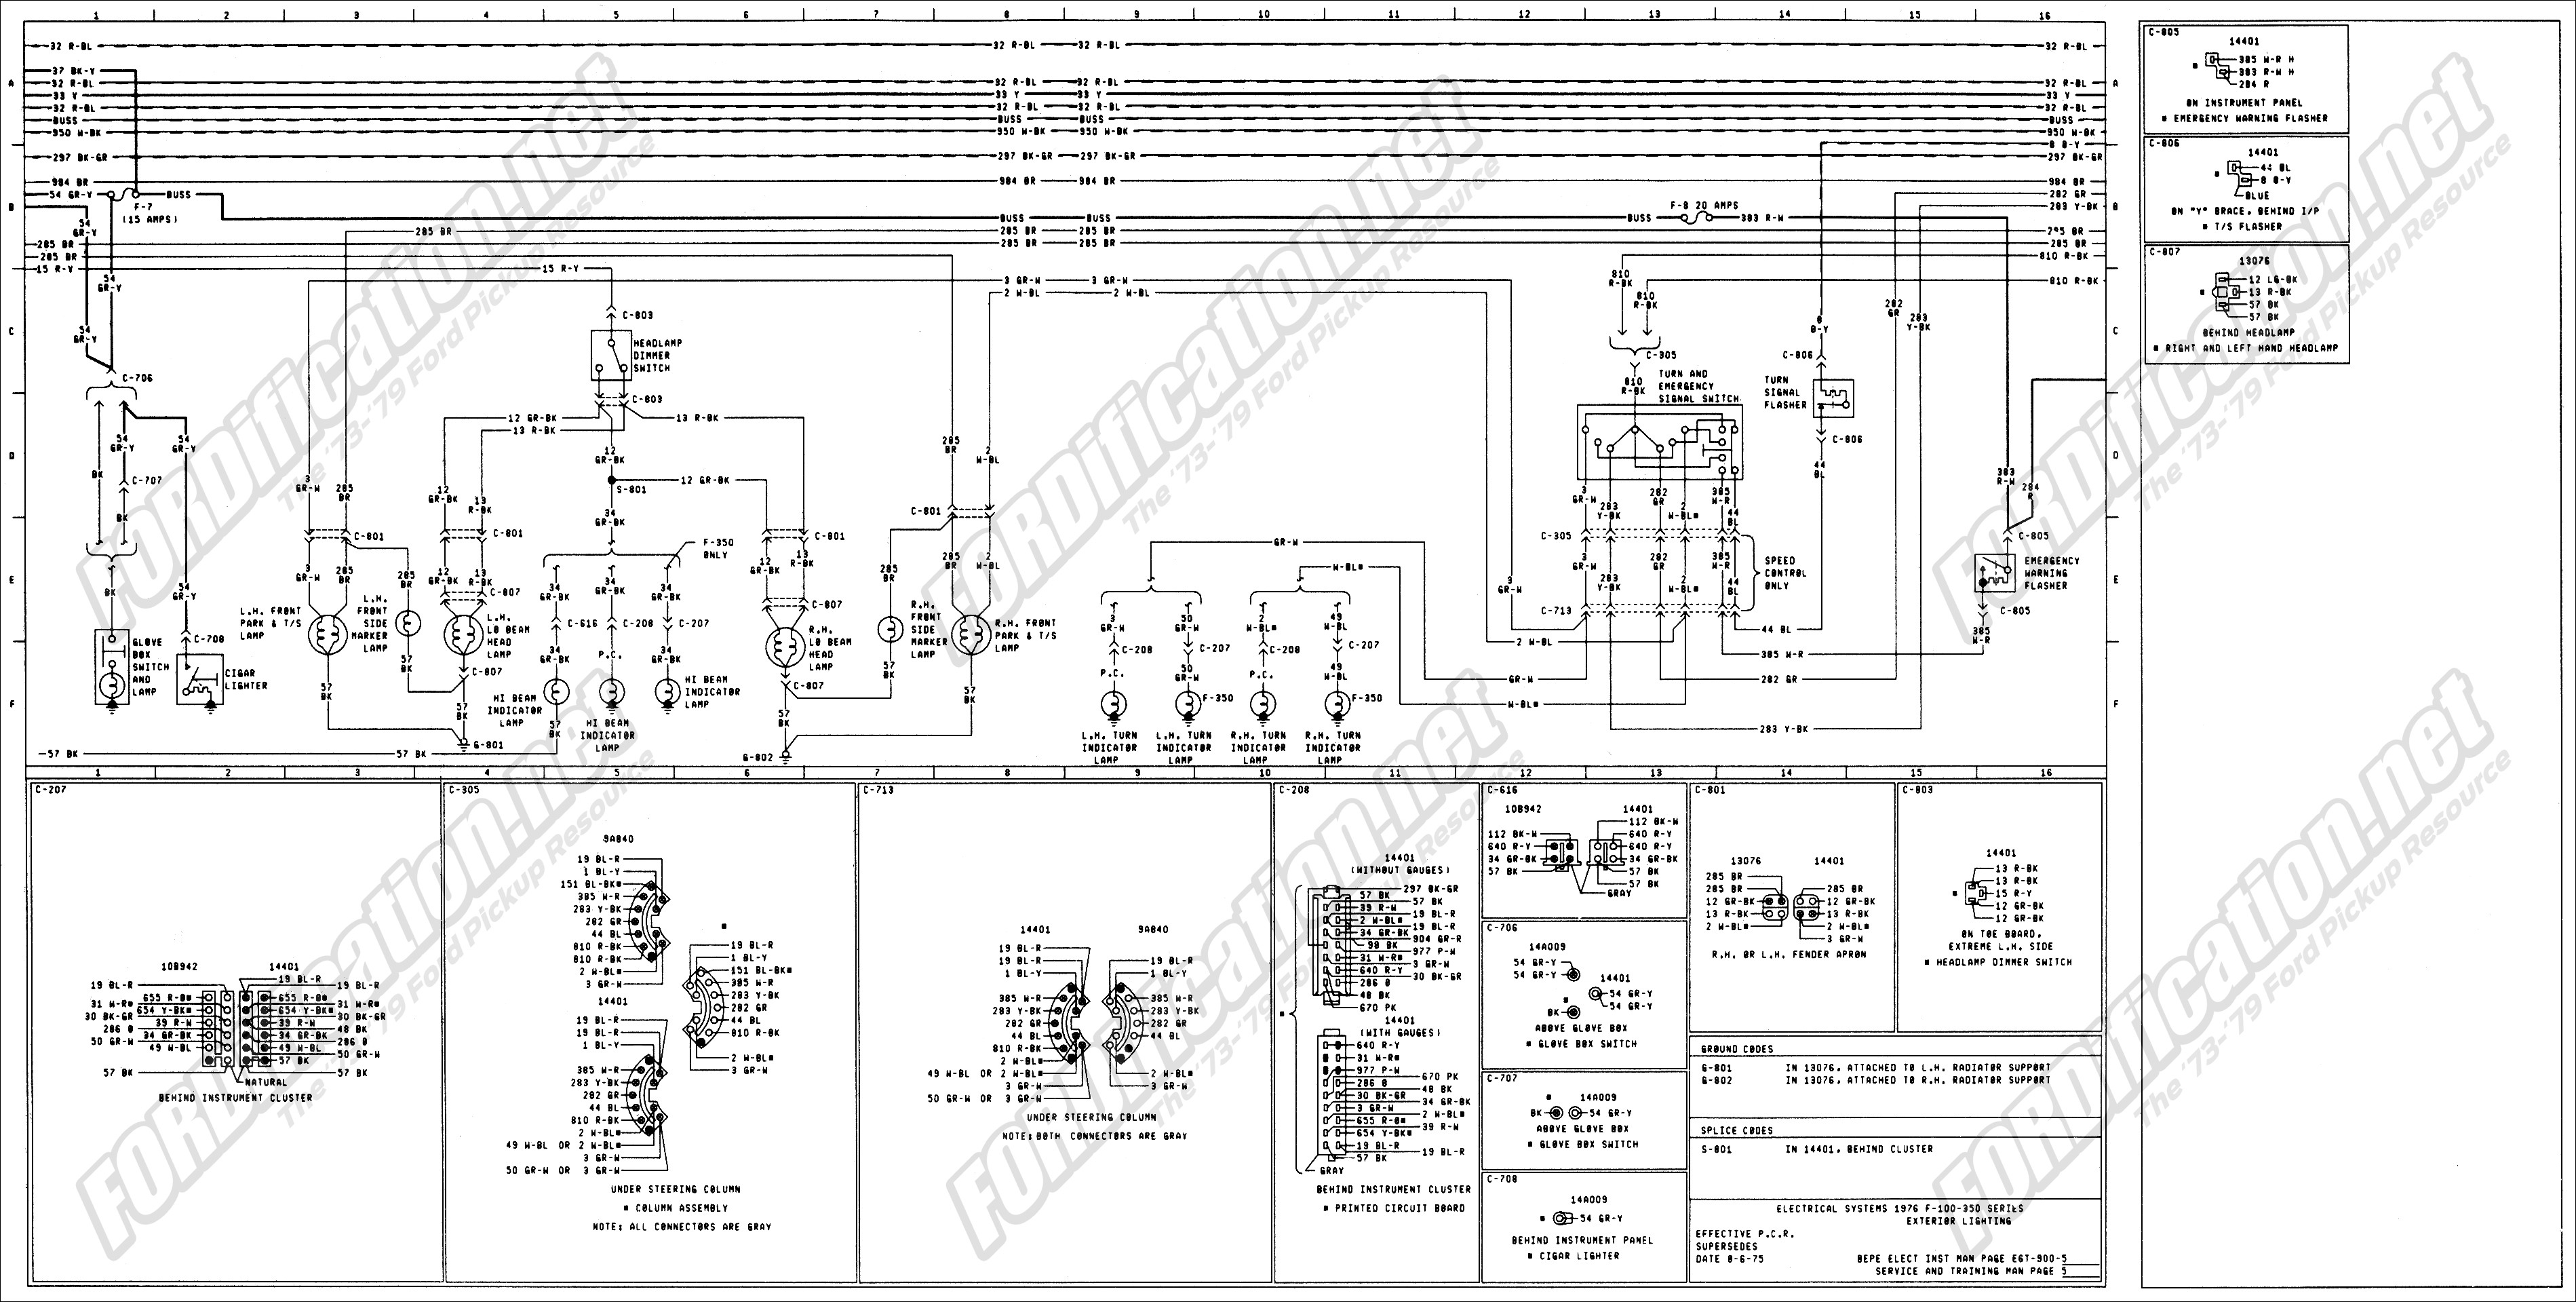 1976 ford wiring diagram wiring diagram 1979 ford f150 ignition switch wiring diagram ford f 150 wiring harness diagram 1979